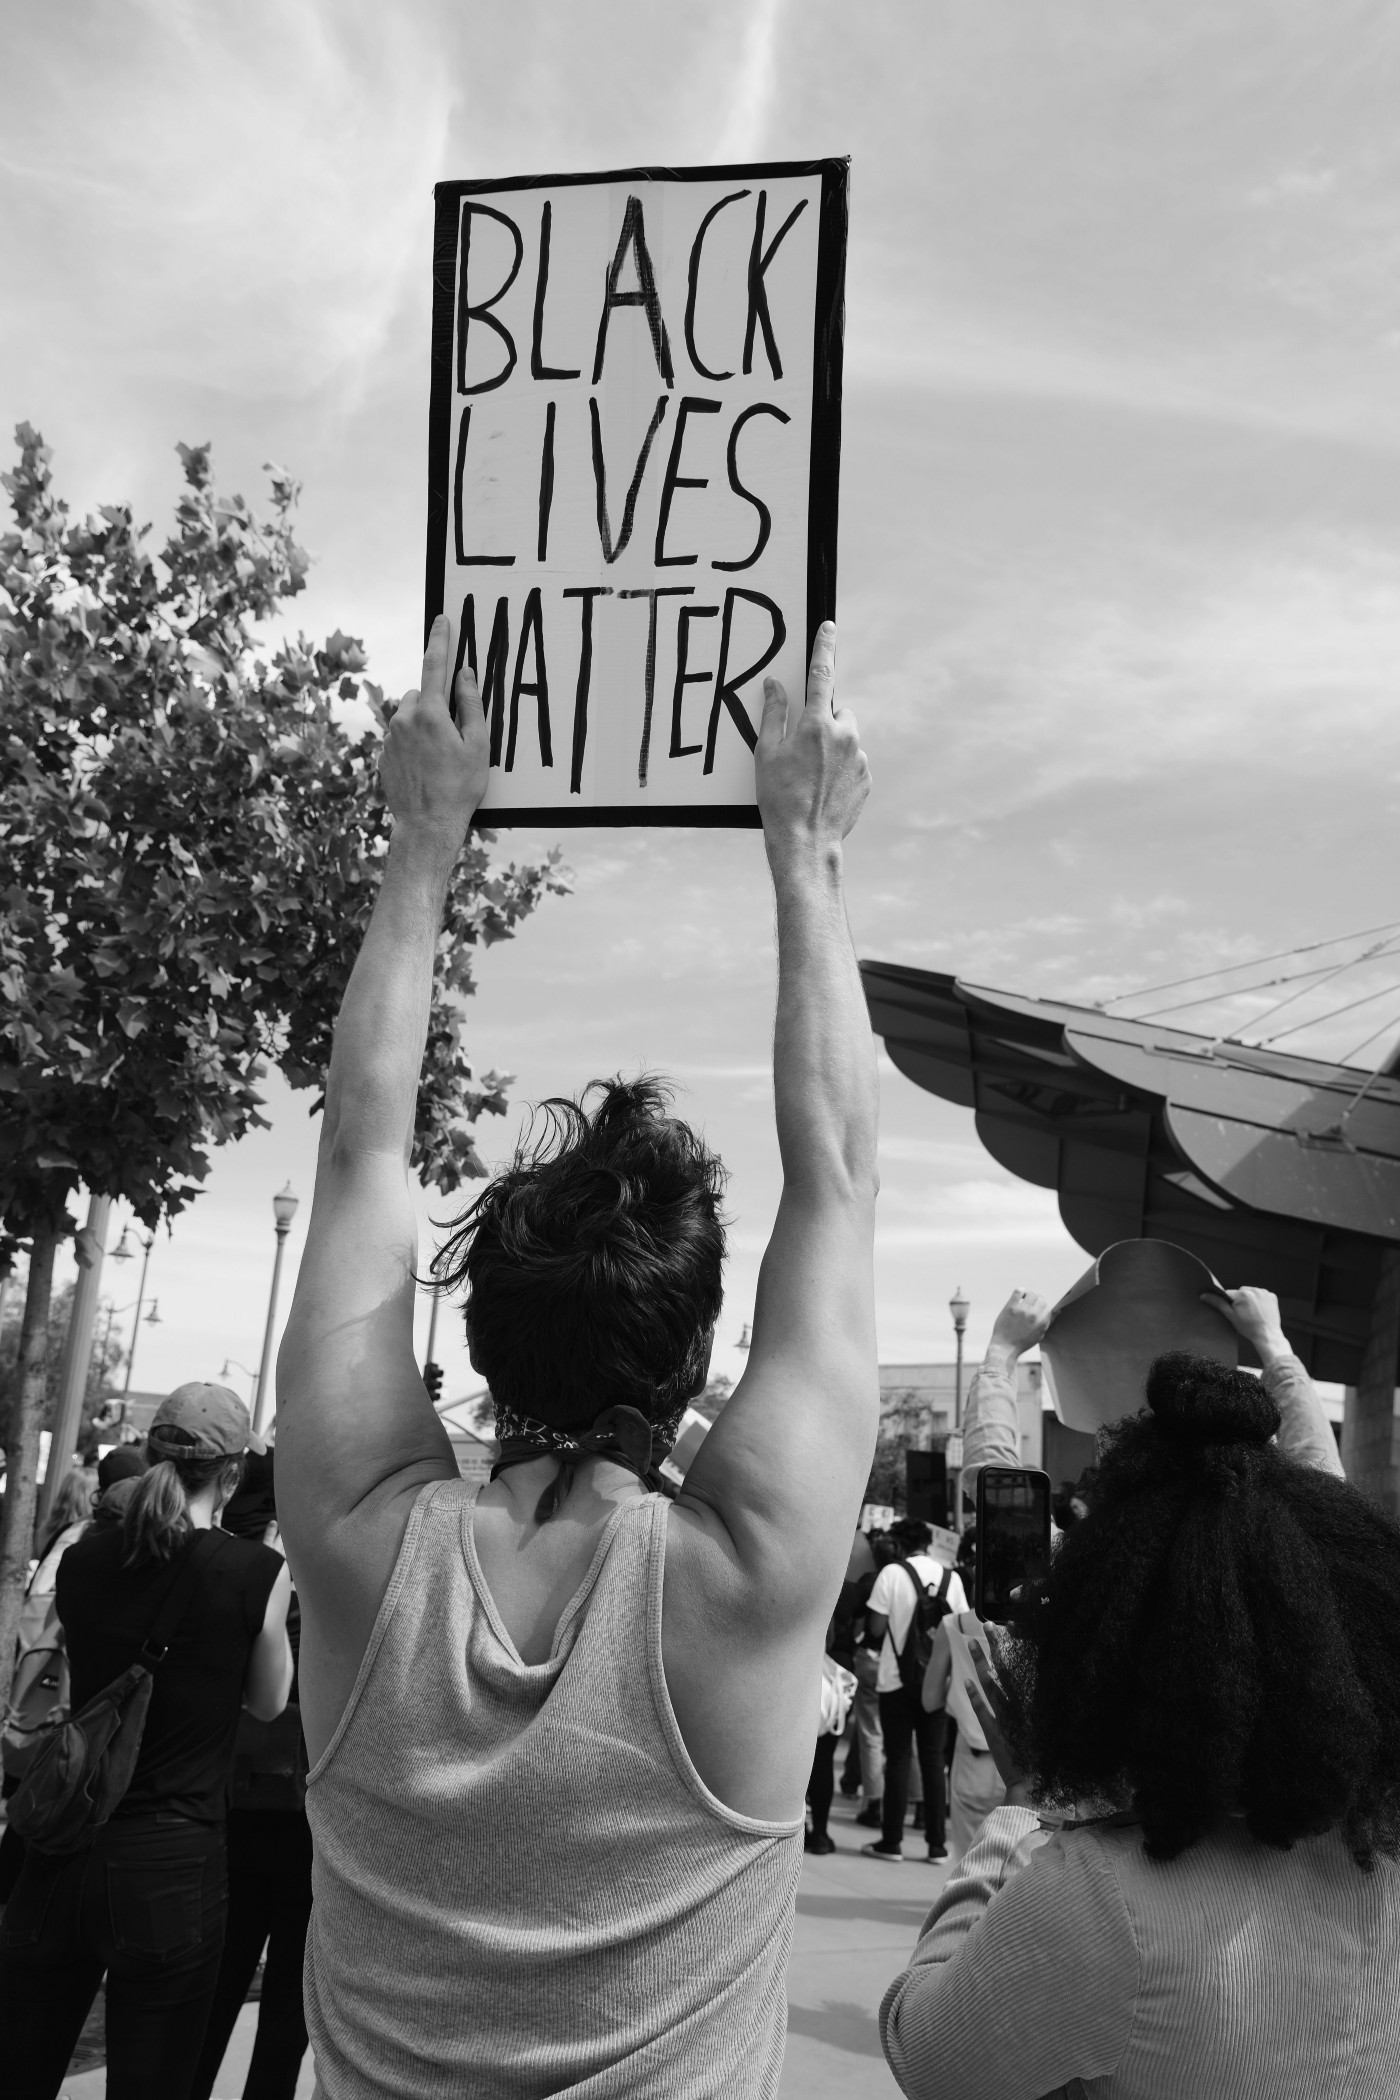 Person identified as white holding Black Lives Matter sign